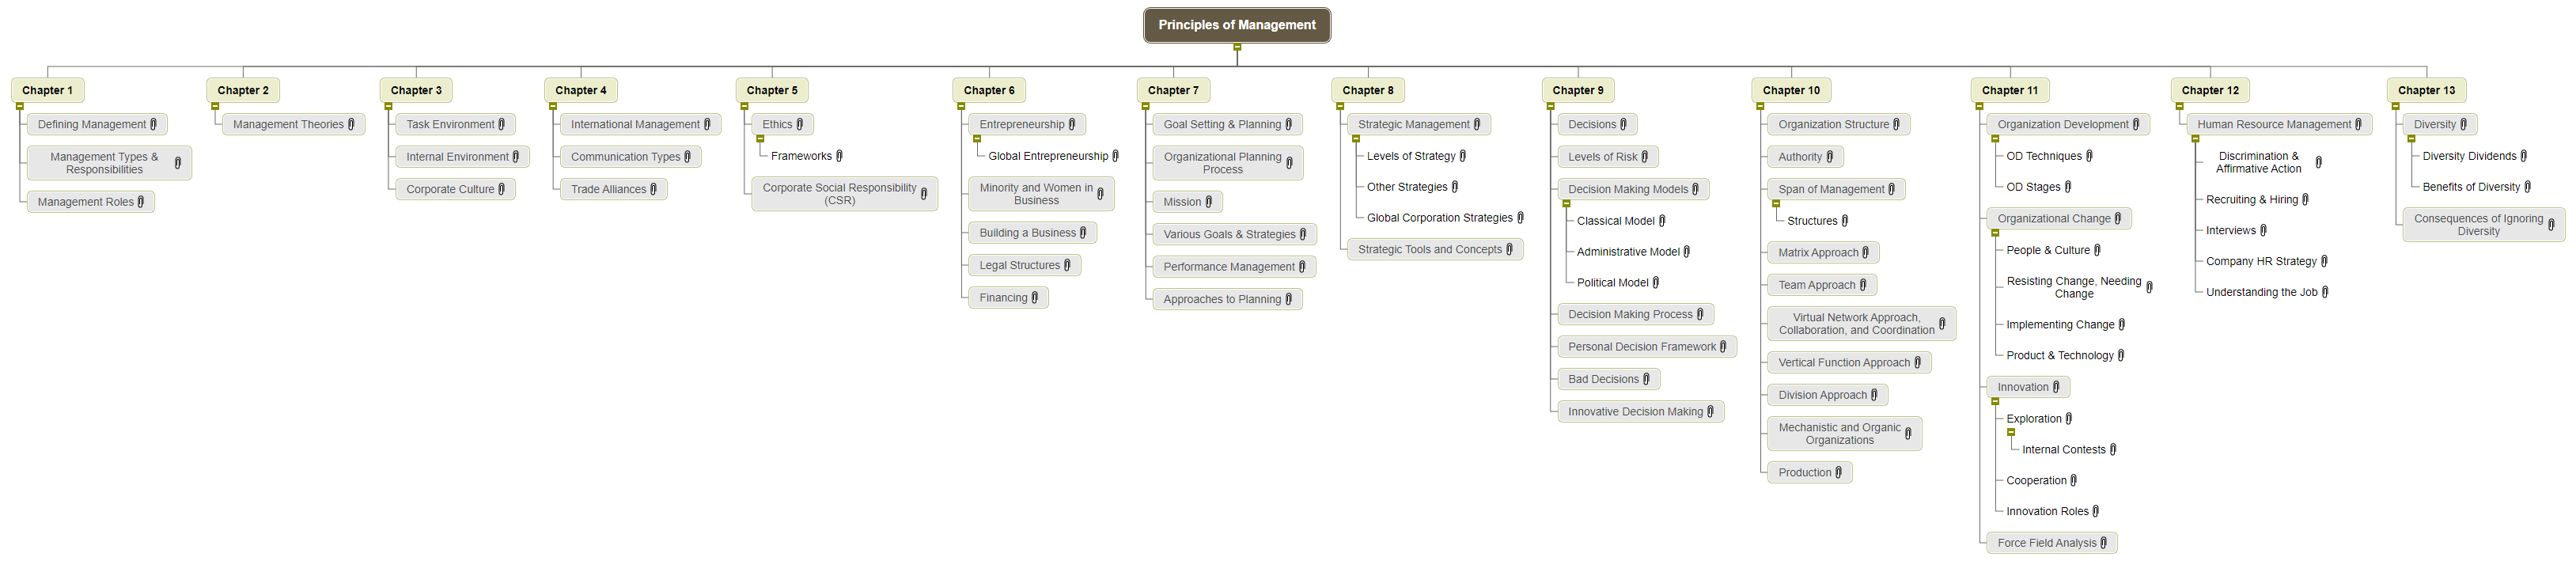 Principles of Management WBS